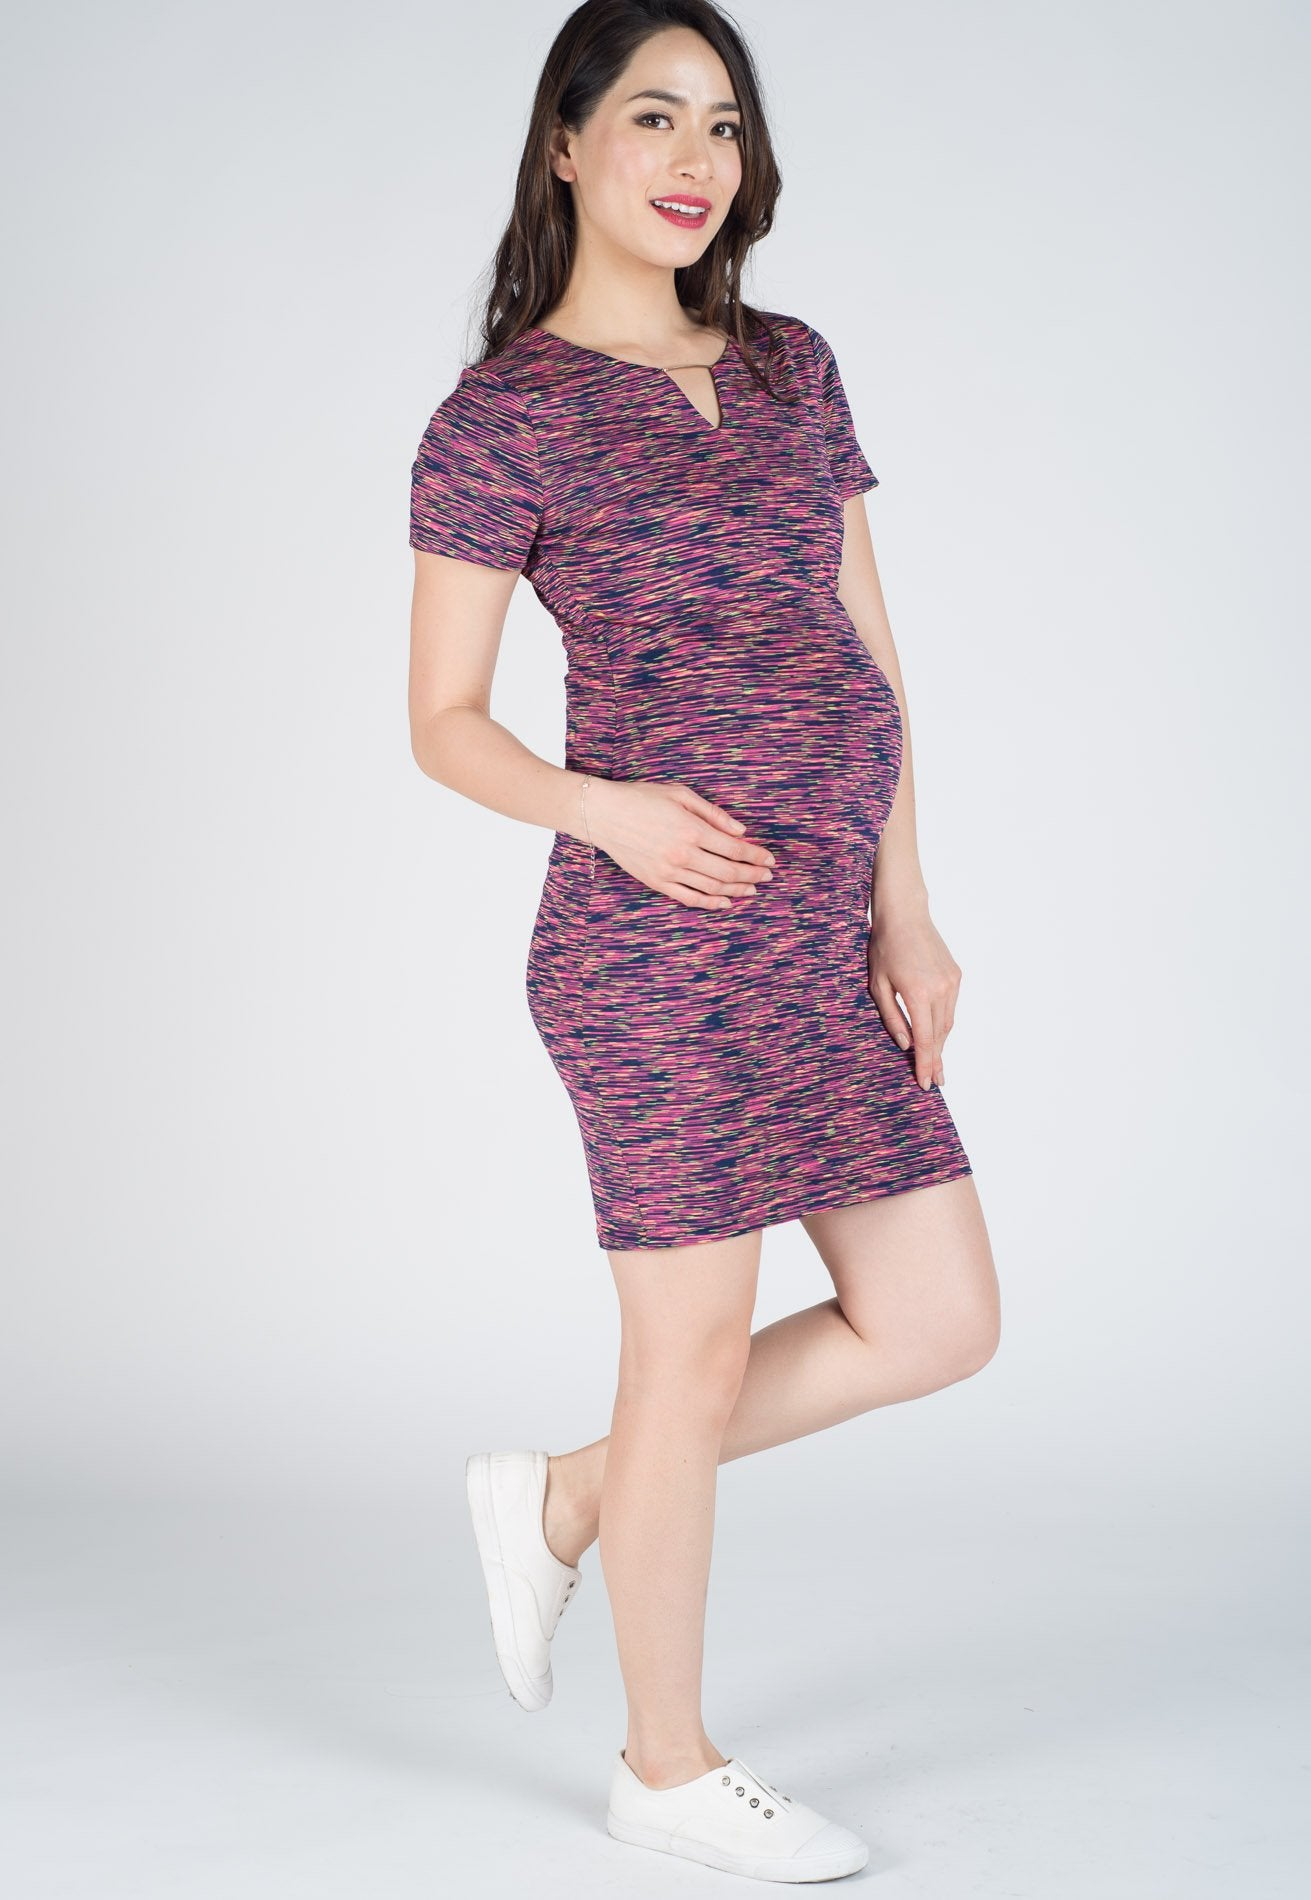 Mothercot Issa Dark Rainbow Bodycon Nursing Dress  by JumpEatCry - Maternity and nursing wear